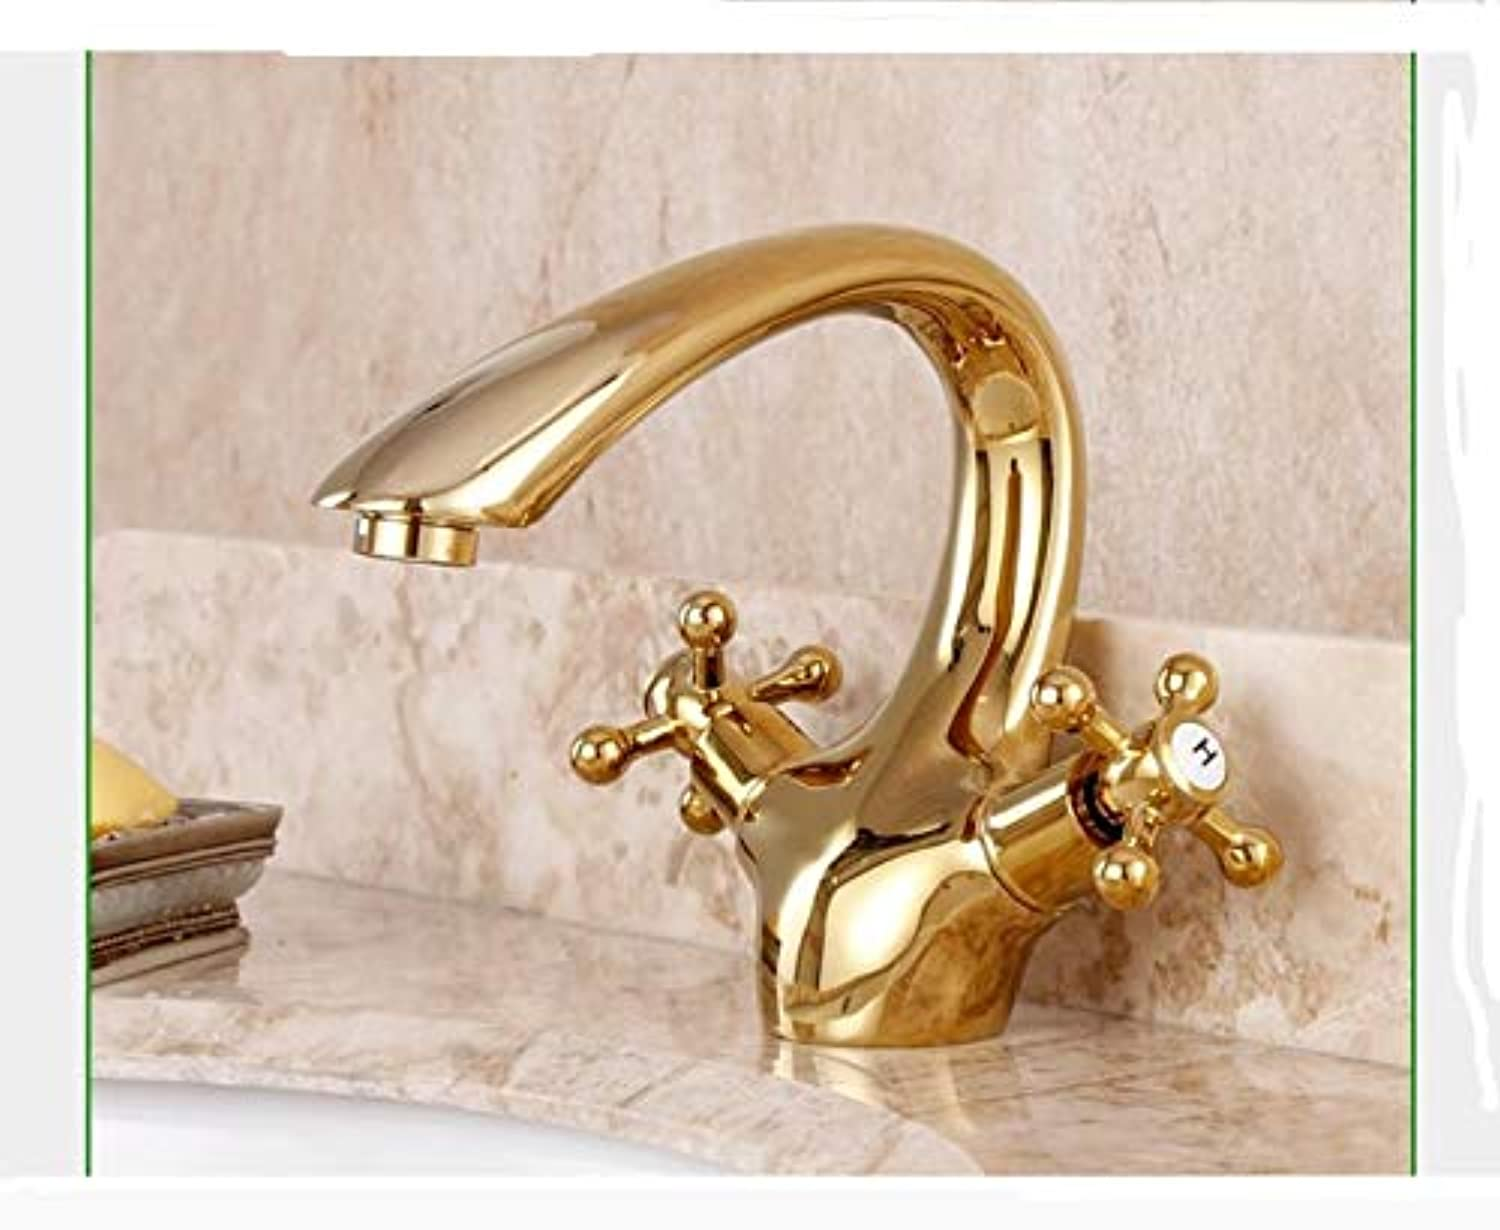 BBQBQ Hot and cold basin faucet antique faucet gold-plated double handle basin faucet European style